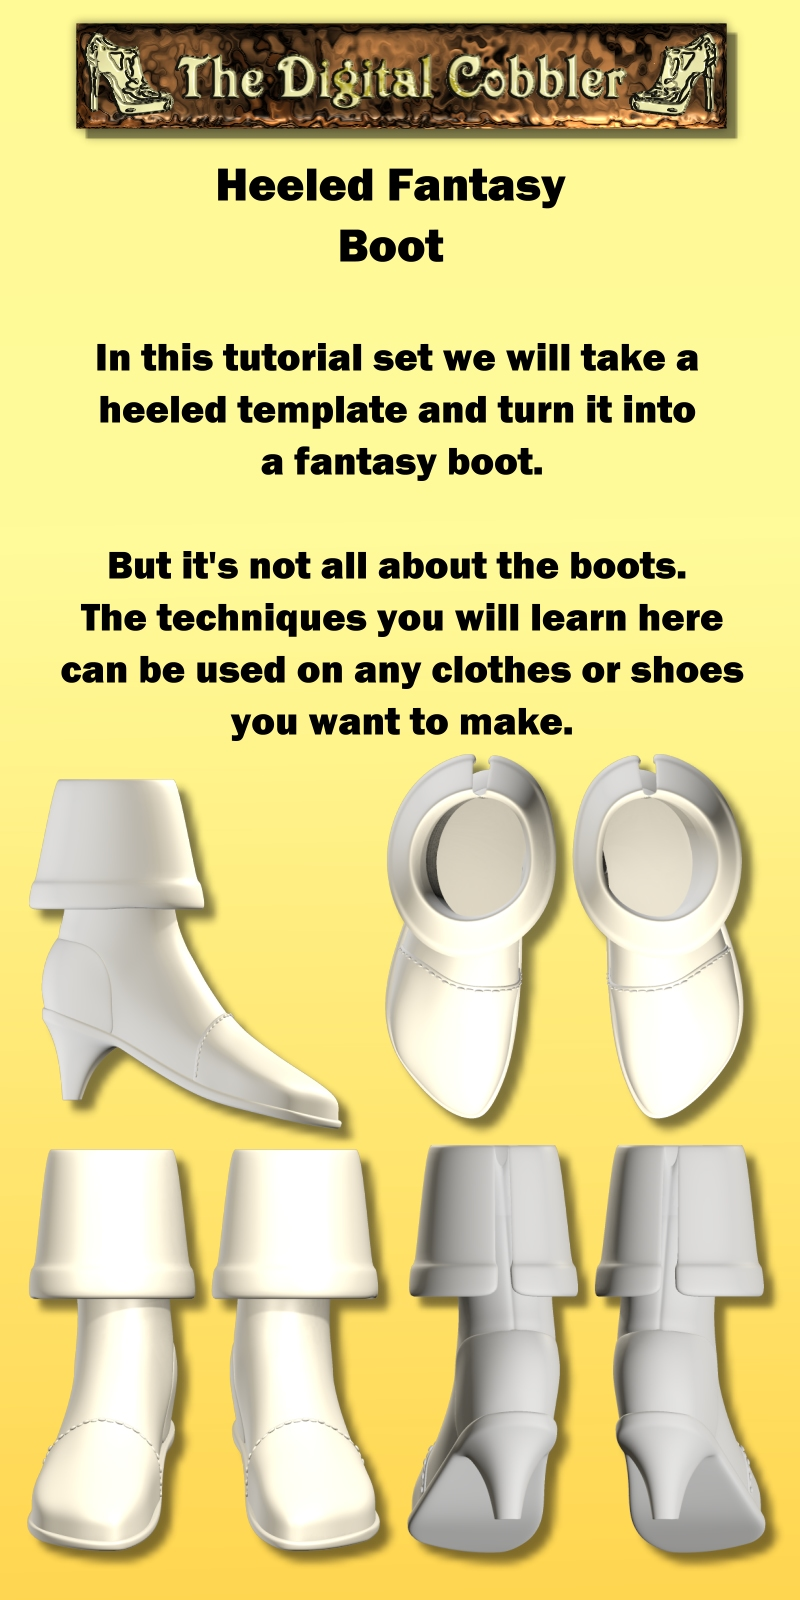 The Digital Cobbler Fantasy Boot Tutorial